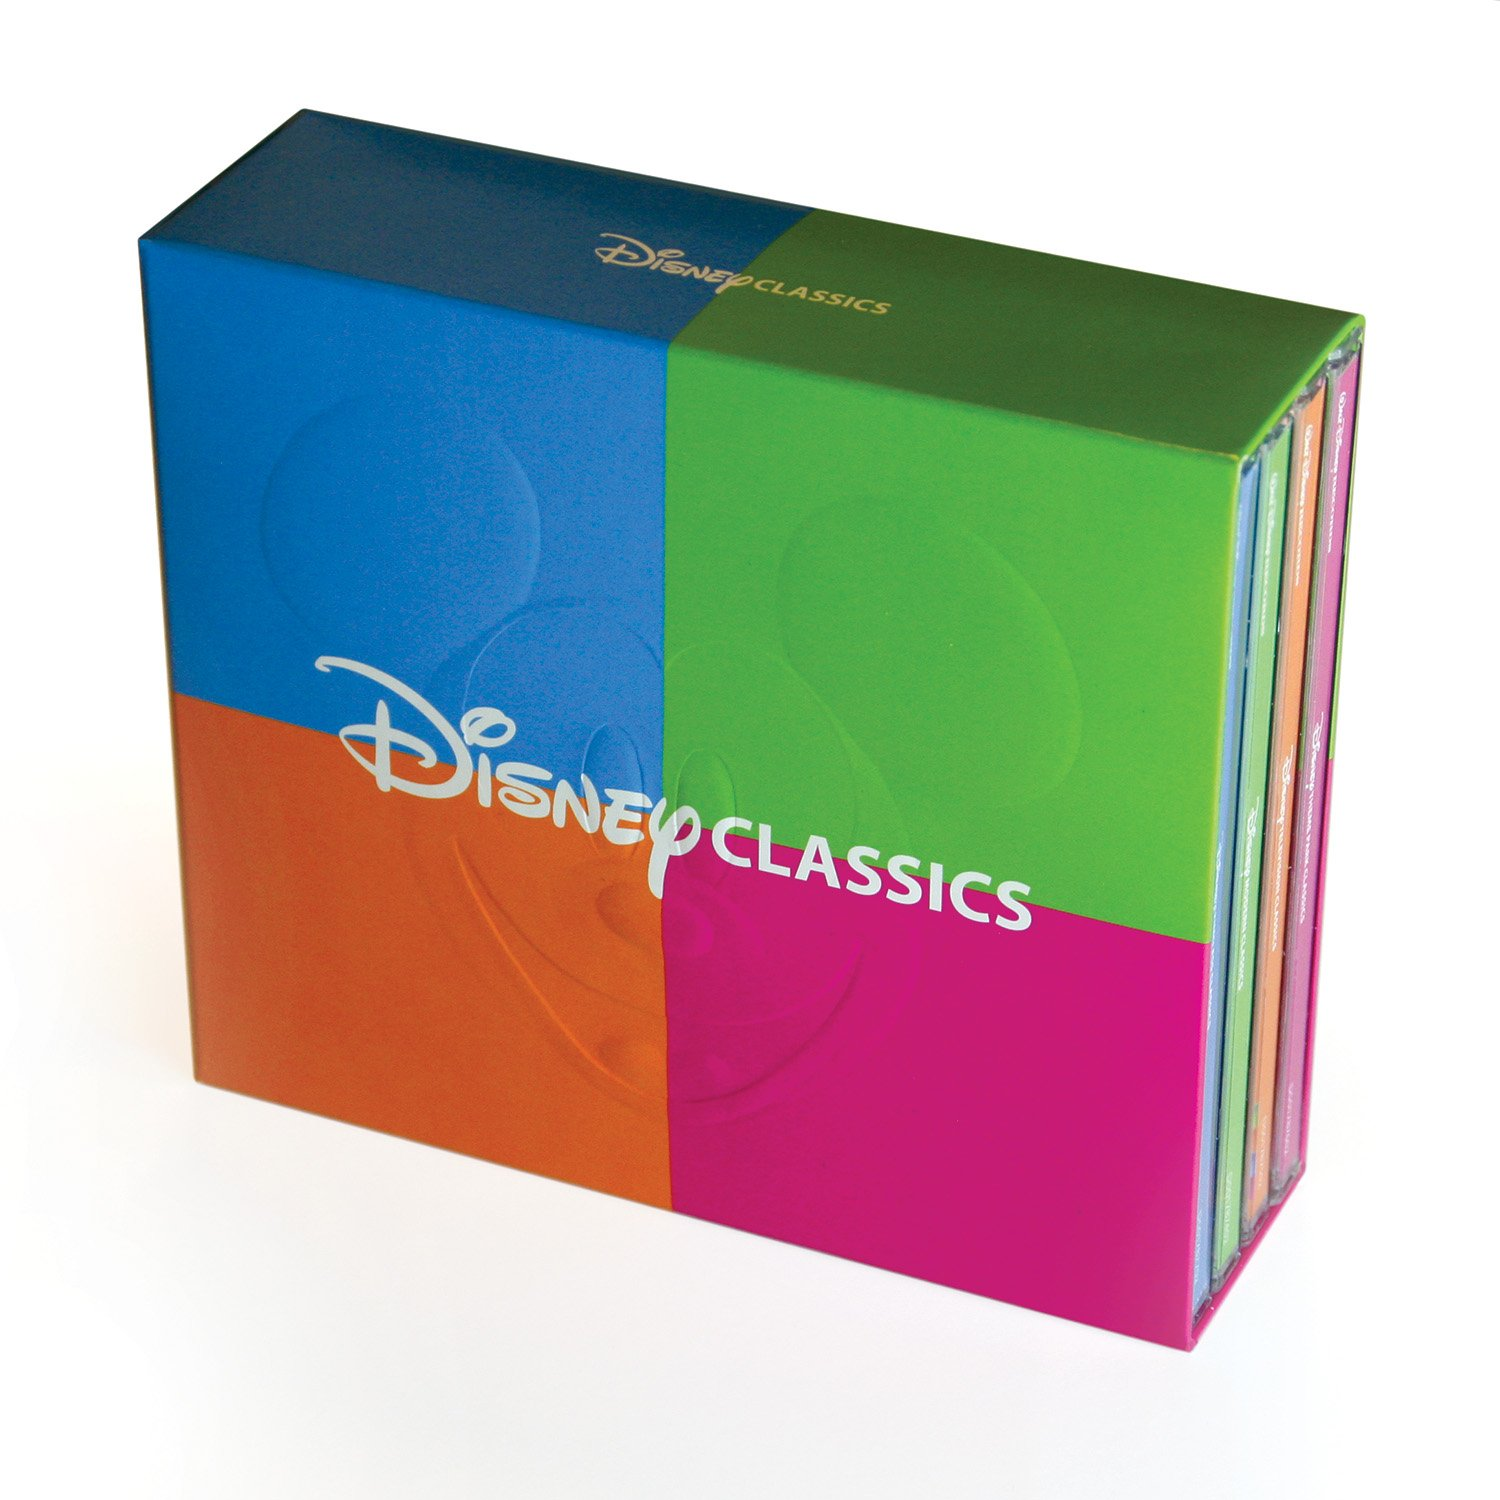 NOW AVAILABLE #DisneyClassicsBox Set